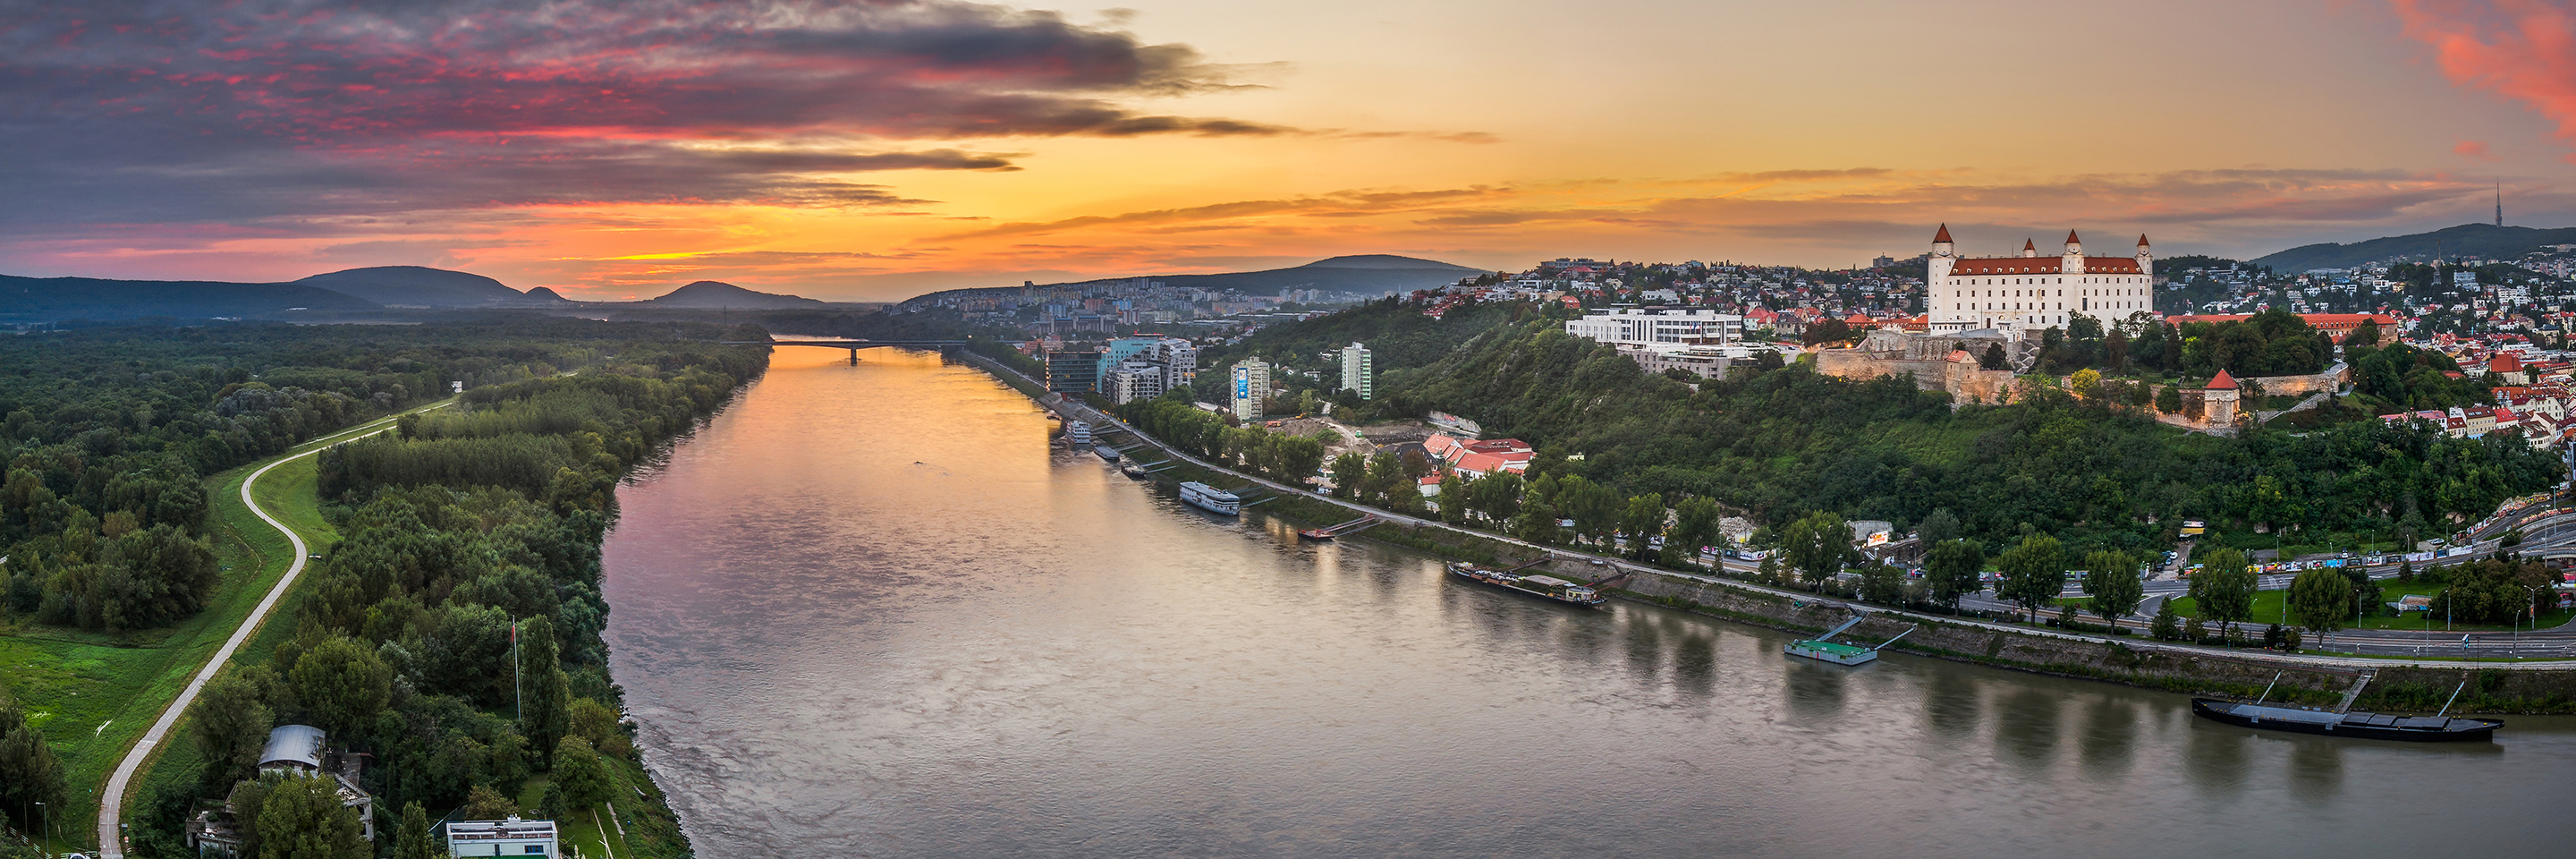 Budapest on the Danube River